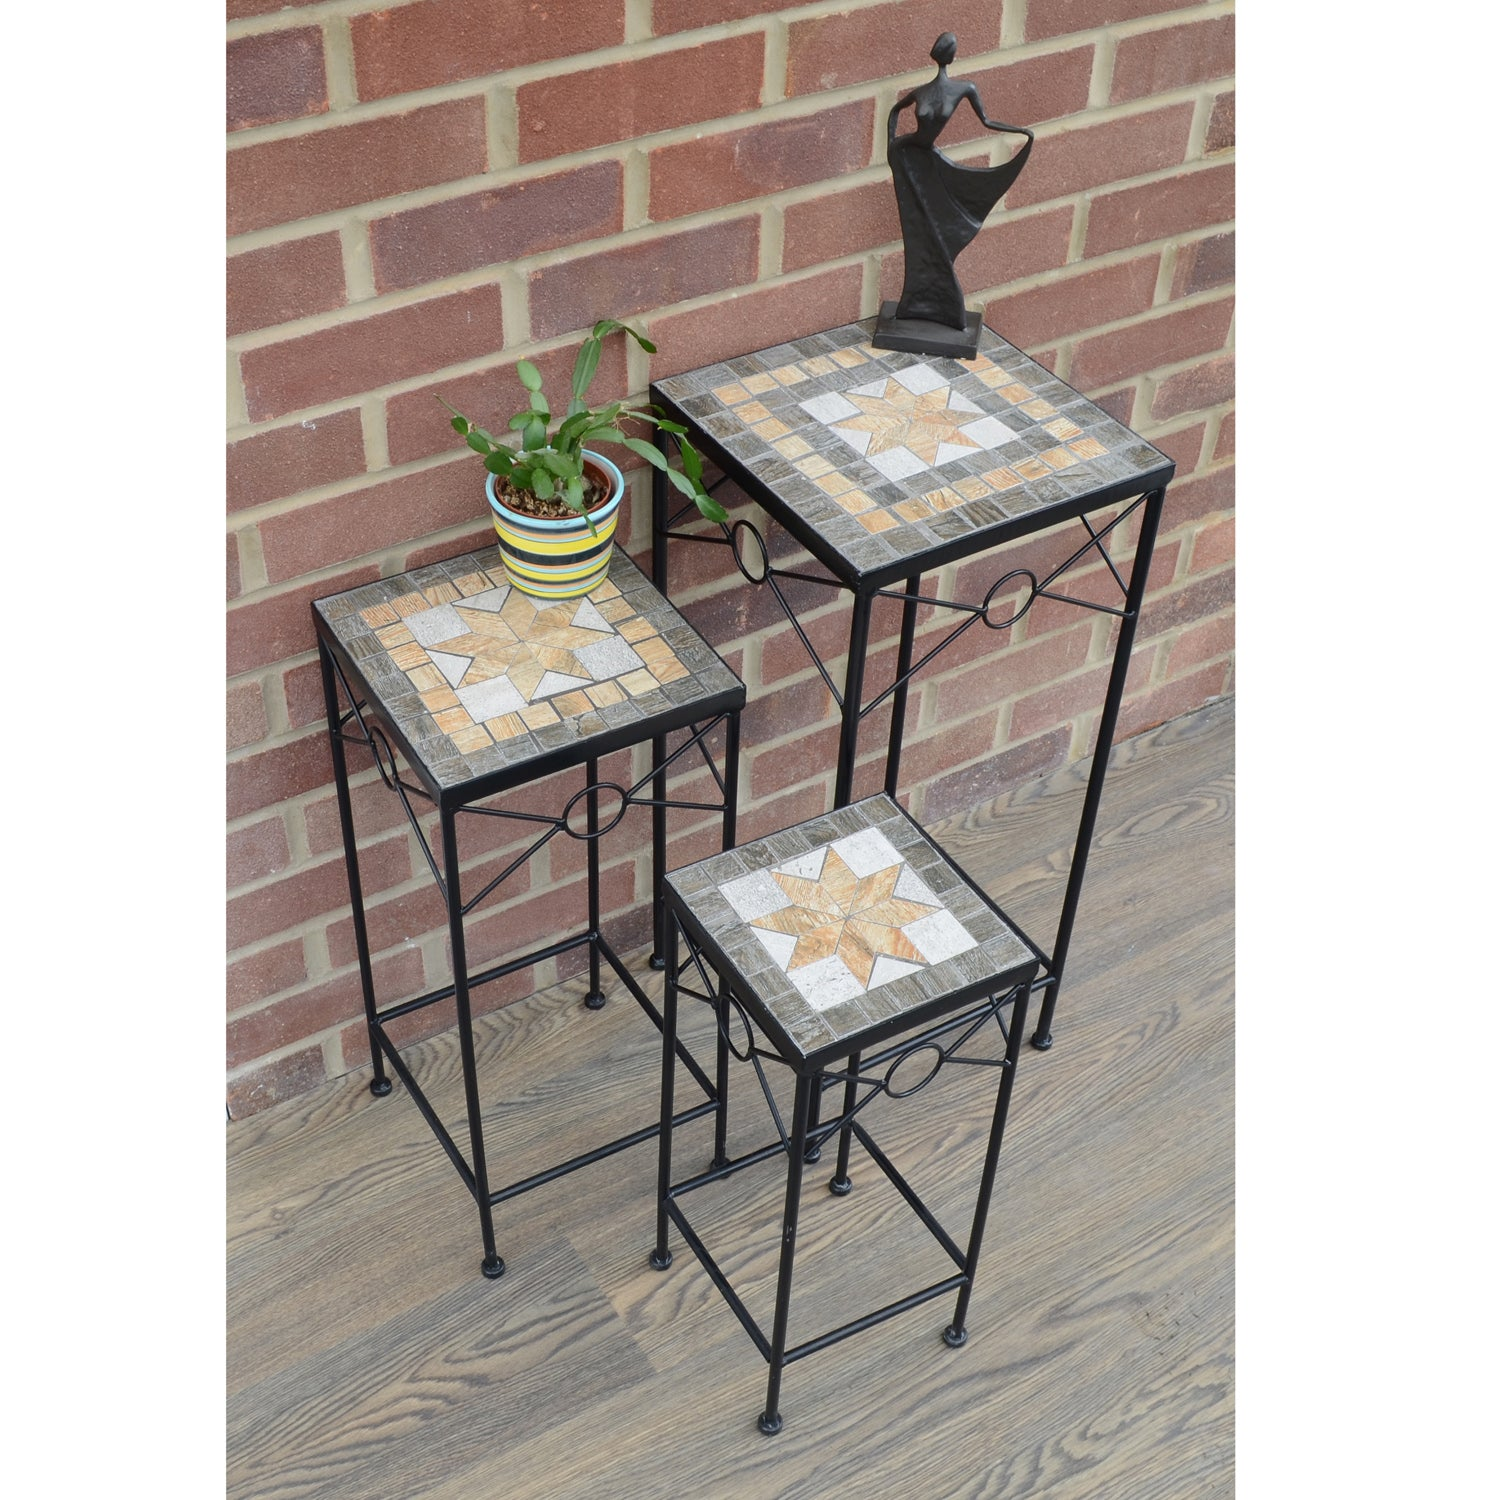 Summer Terrace Brava Square Plantstand Set Of 3 Tall - Ruby's Garden Boutique